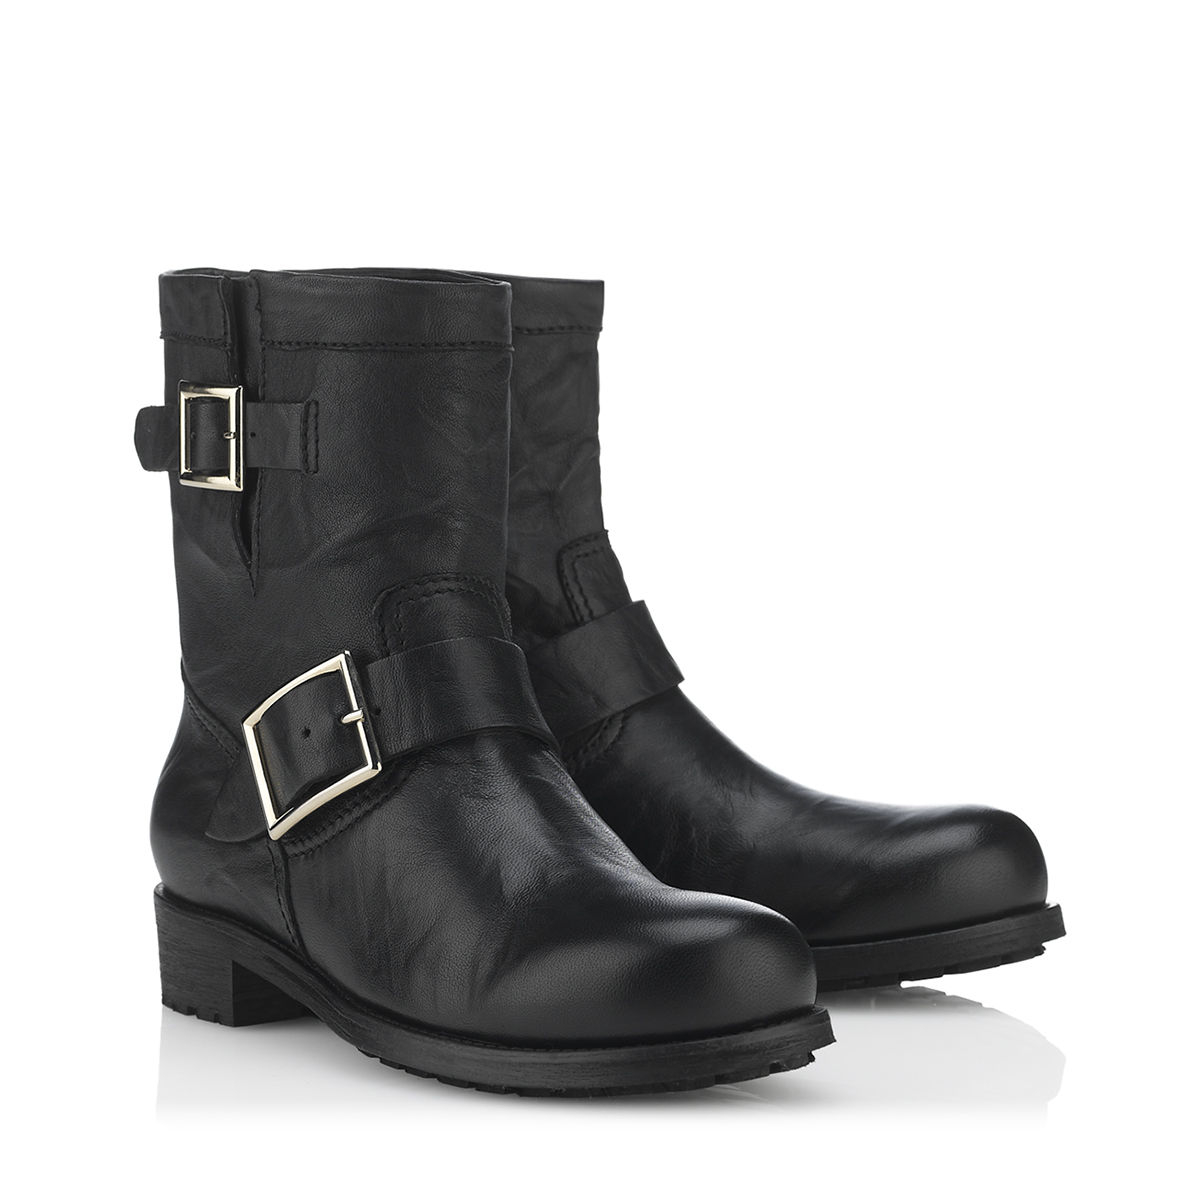 Jimmy choo Youth Furlined Biker Boots in Black | Lyst